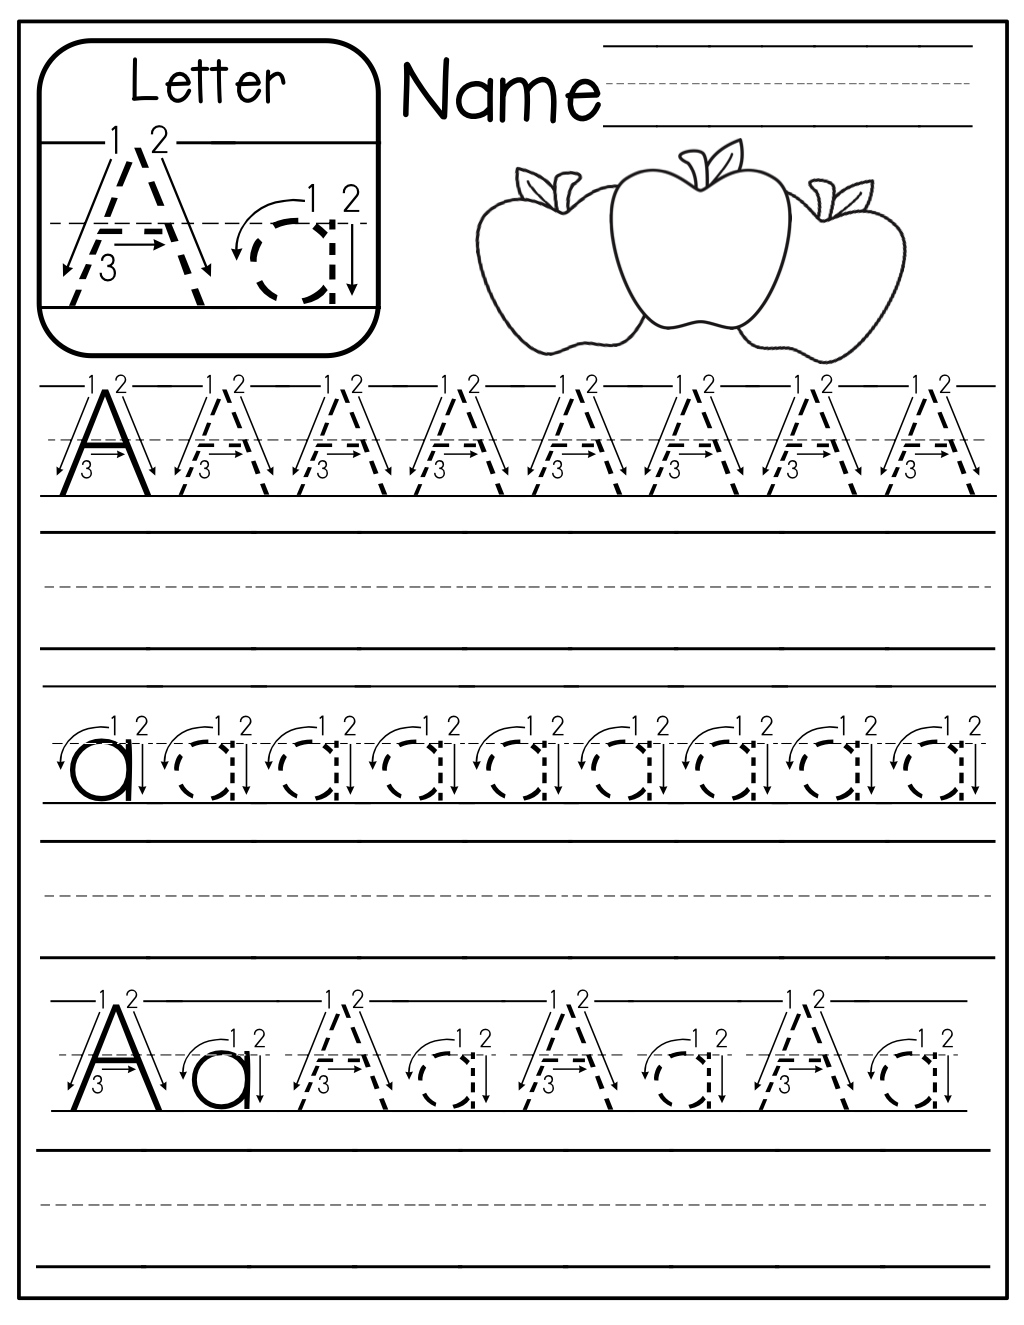 FREE Handwriting practice pages! Just place in sheet protectors ...